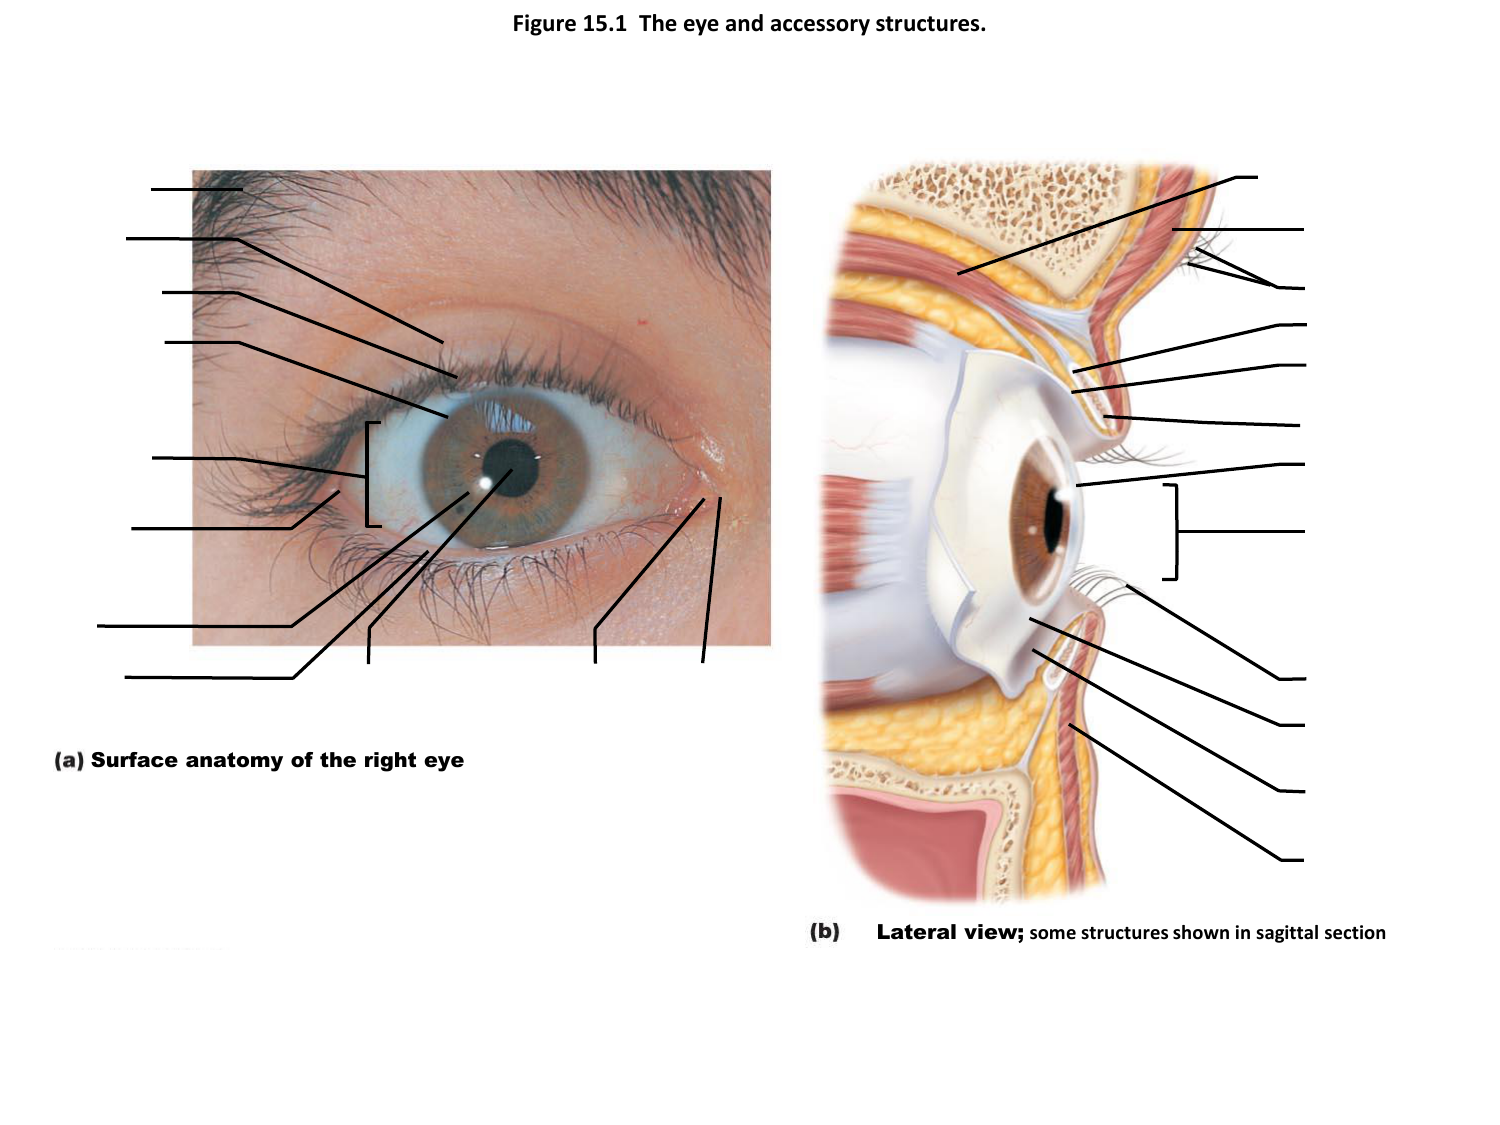 Figure 15.1 The eye and accessory structures.